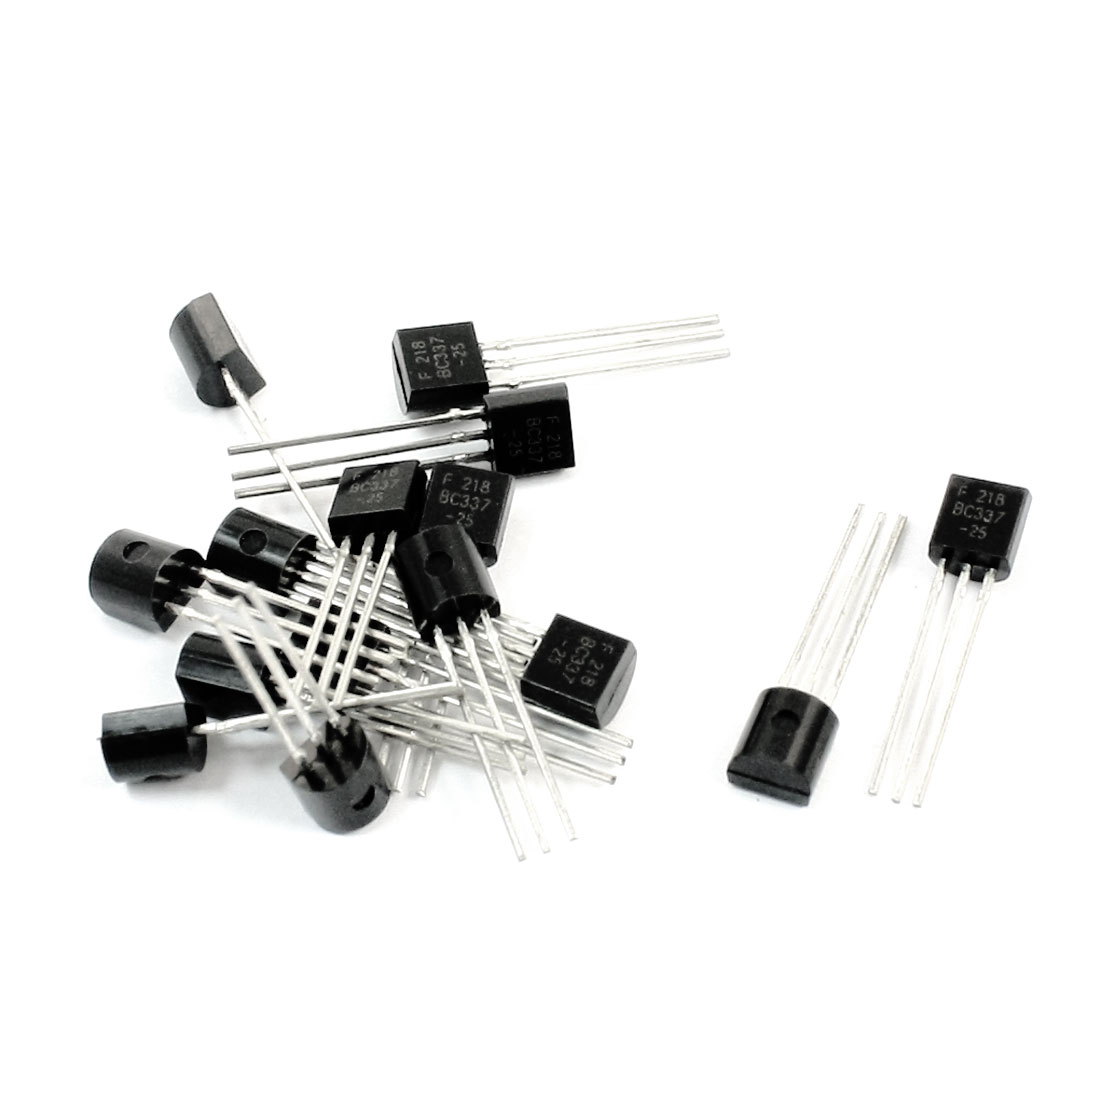 BC337-25 NPN TO-92 Electric Component 3 Pins Through Hole Mount General Purpose Power Transistor 50V 0.8A 15 Pcs